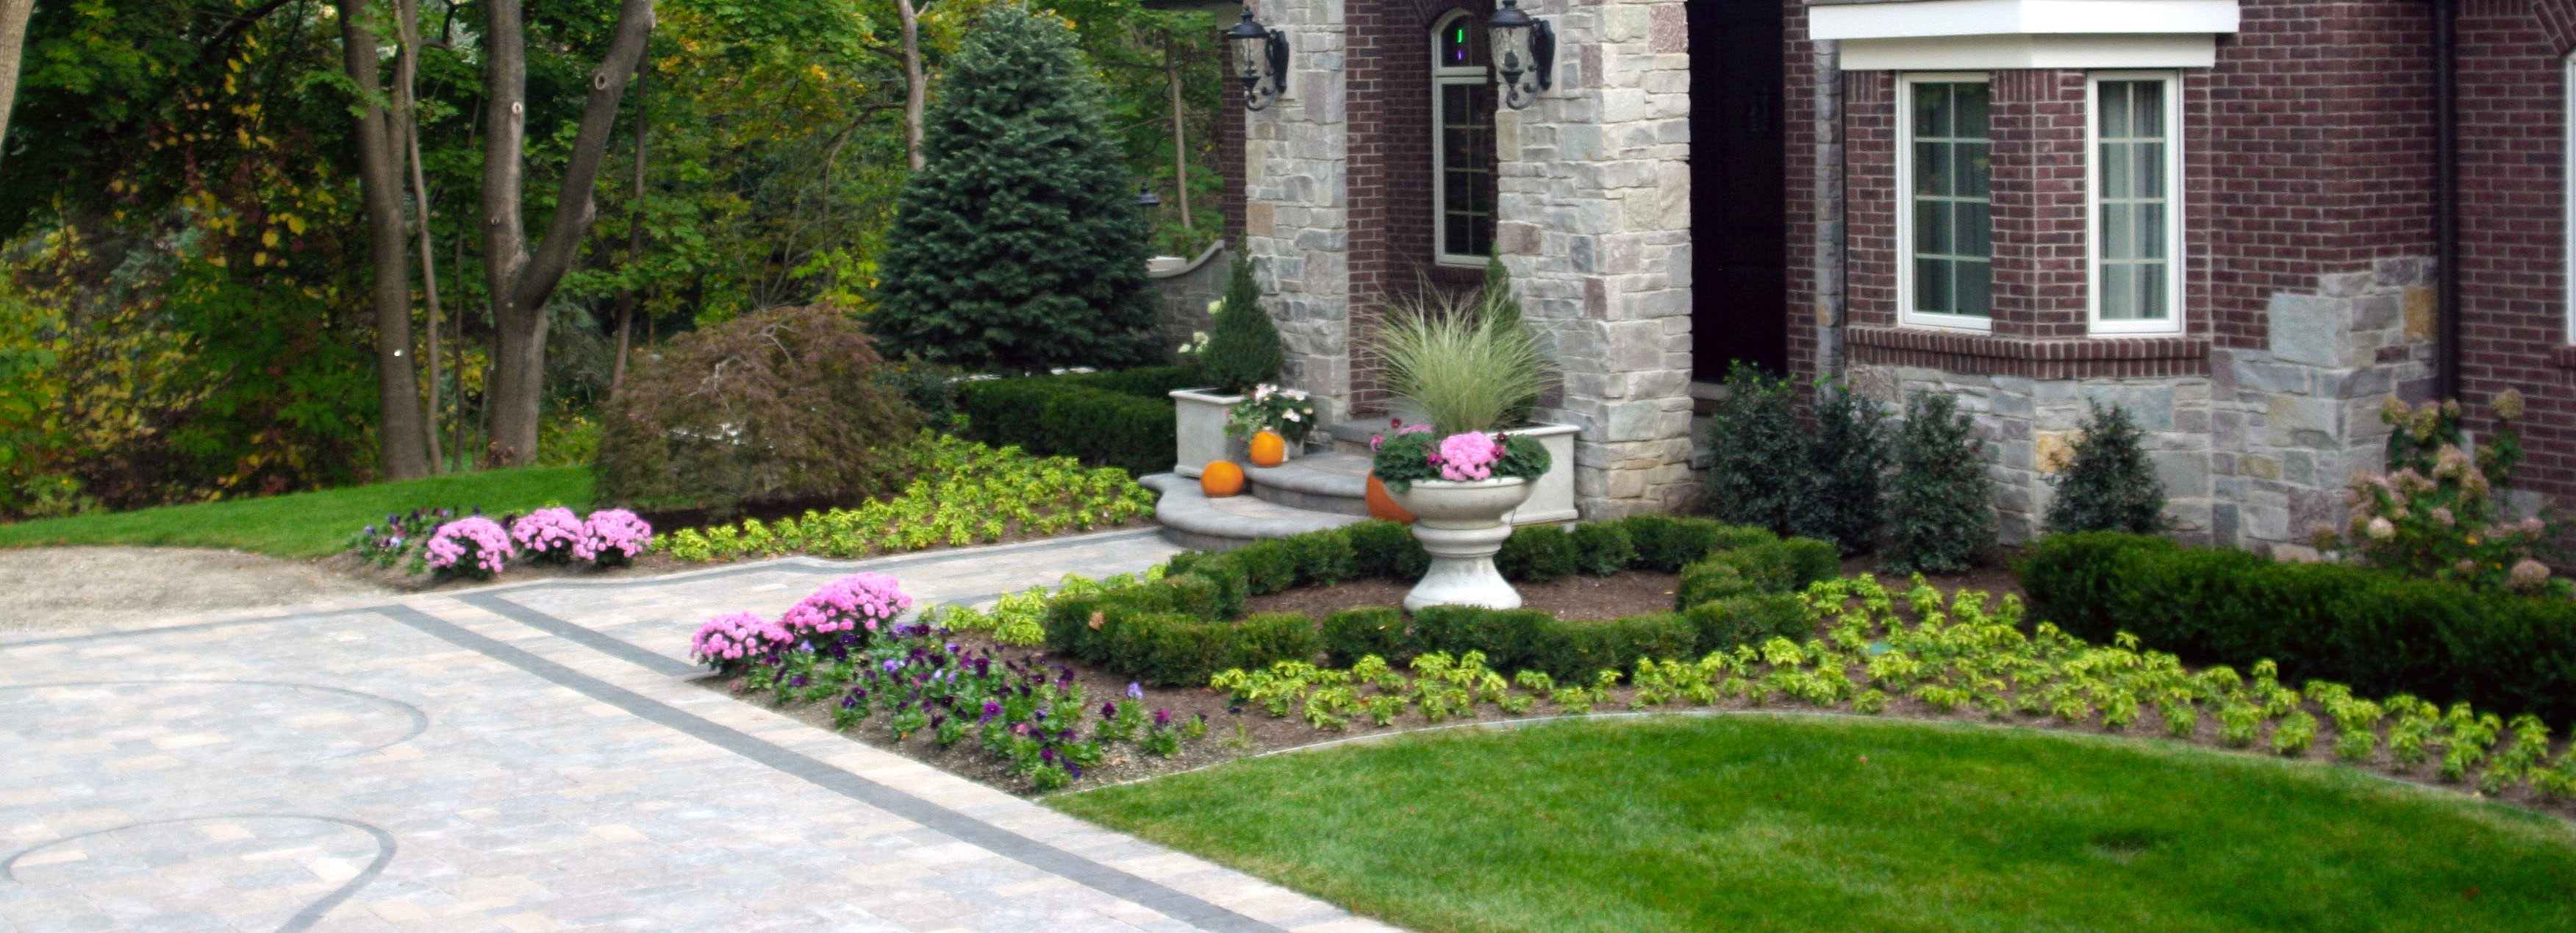 Courtyard Stone & Landscape's custom courtyard paving